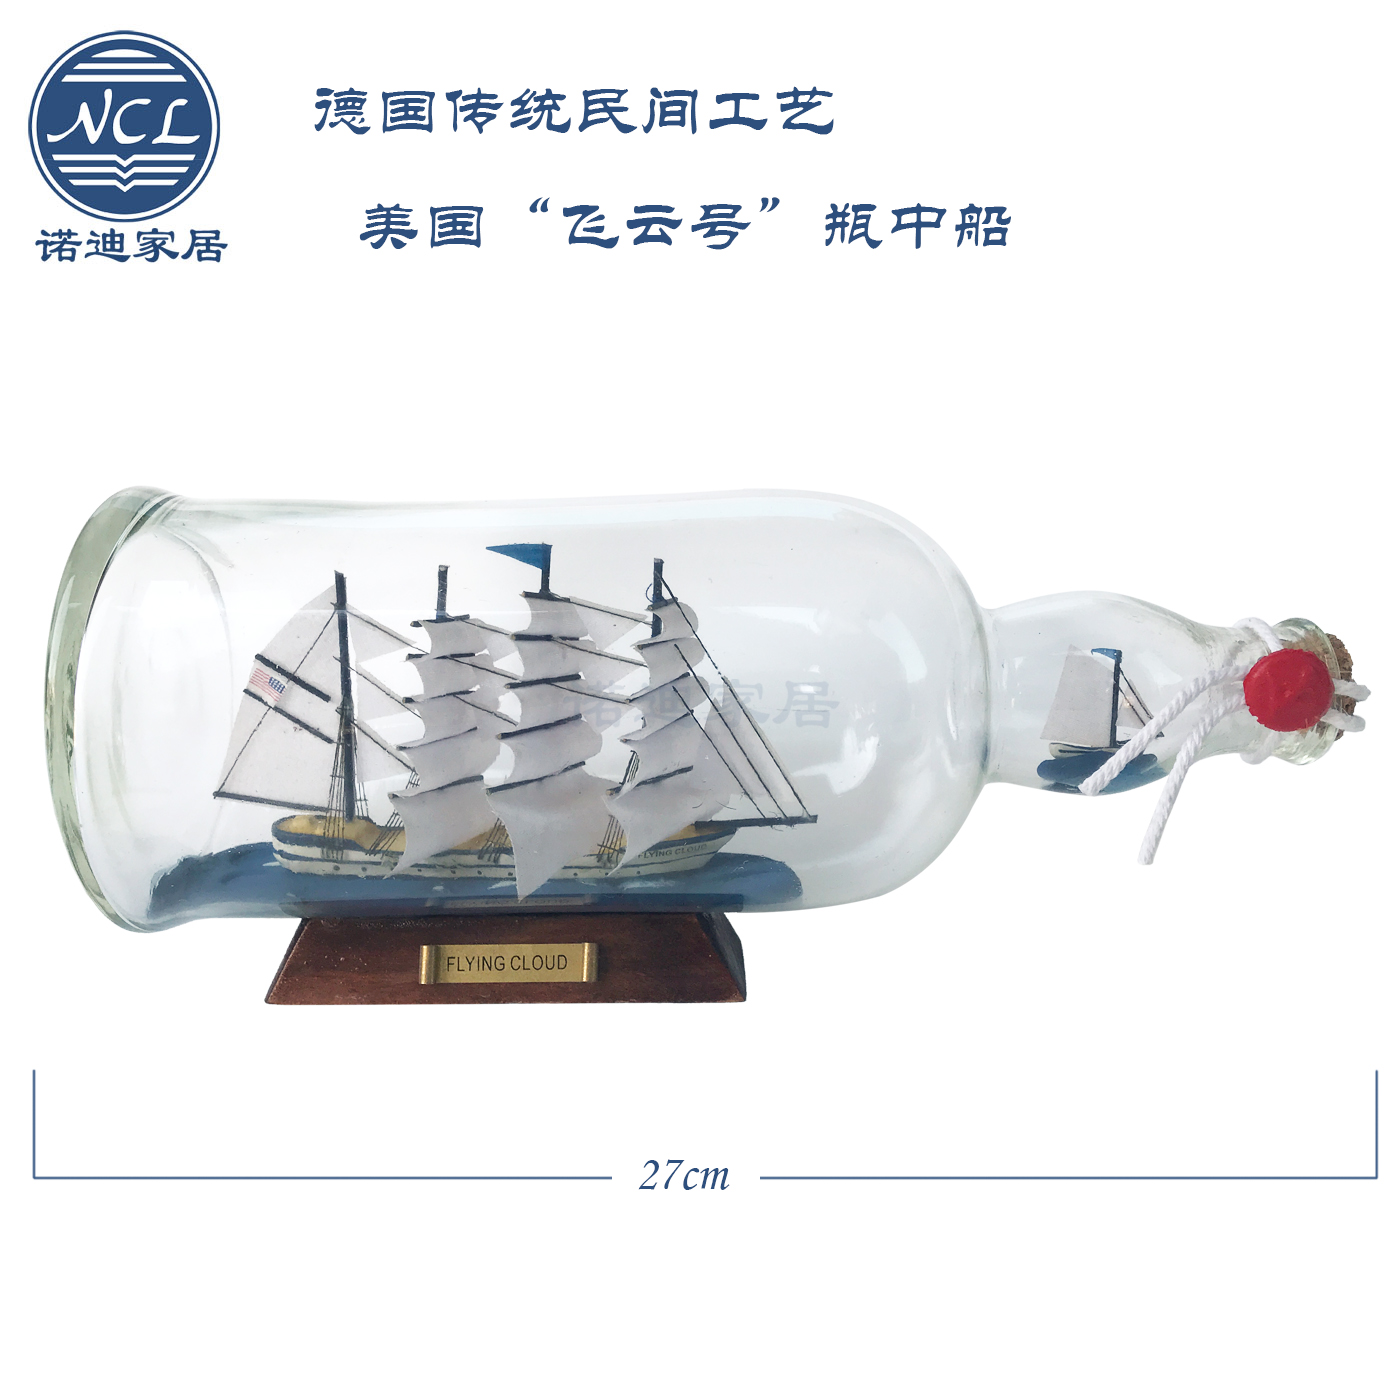 Drift Bottle Ship In A Bottle HMS Surprise Sailing on Mediterranean Home Sitting Room Adornment Place Adorn Gift Crafts Model clatronic hms 2739